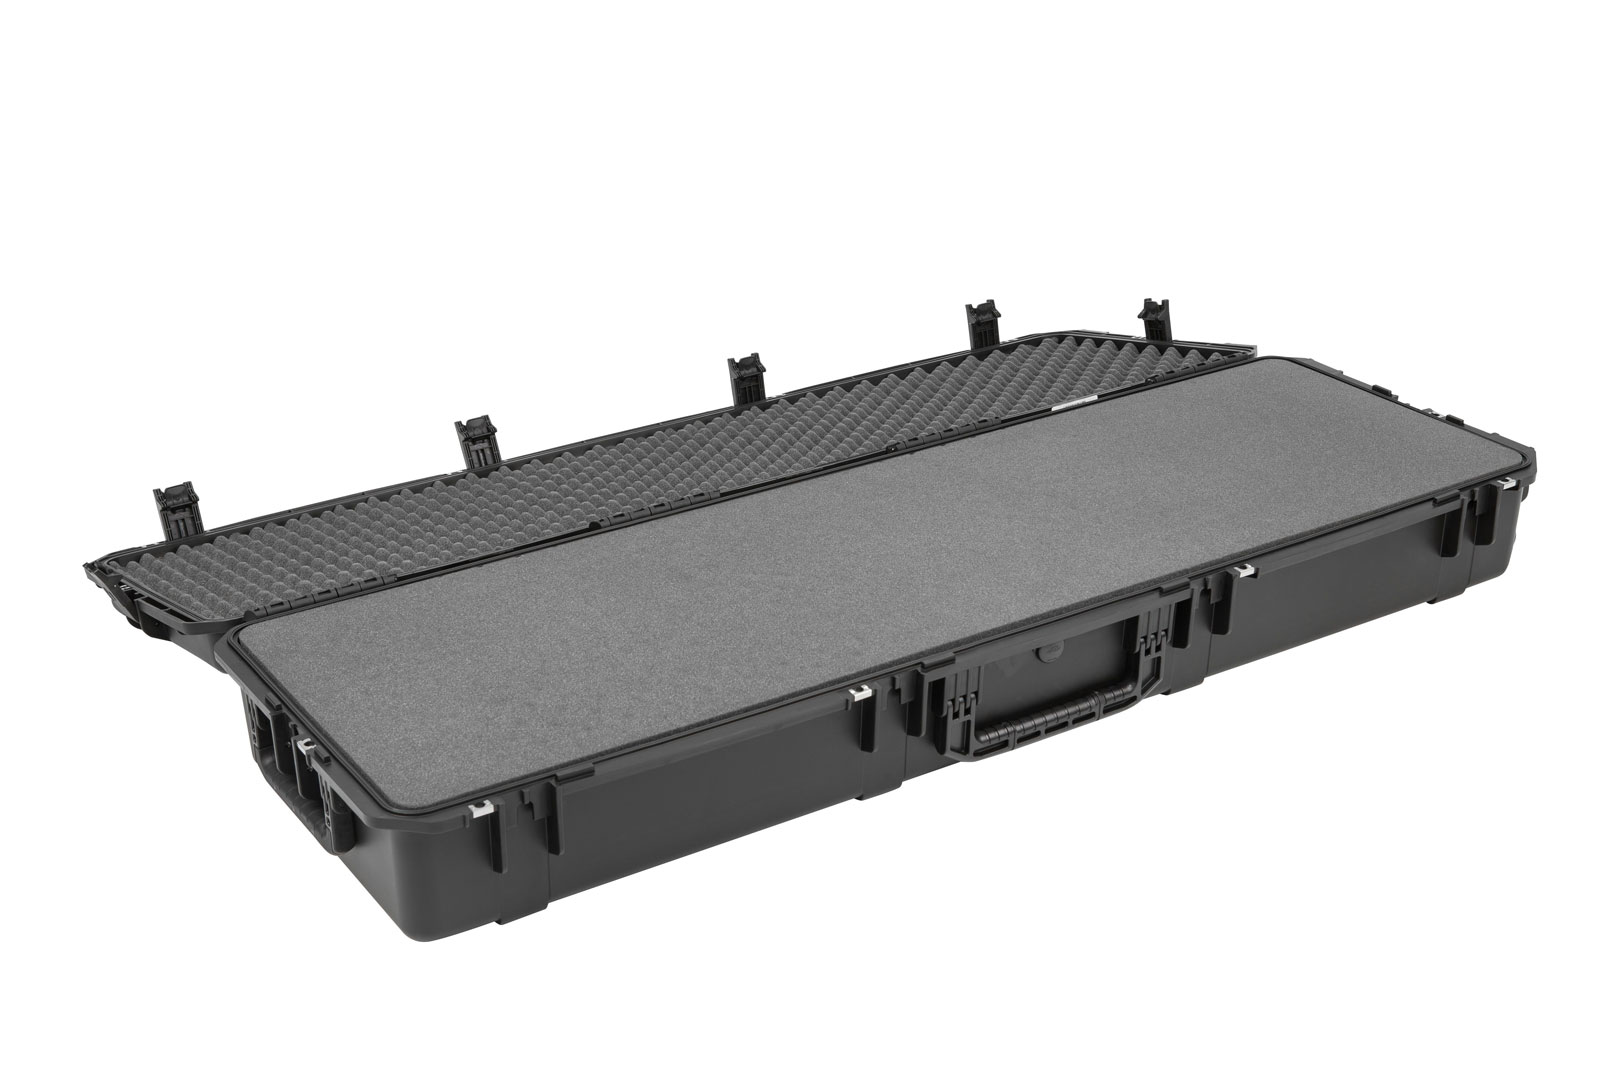 INDUSTRIAL SINGLE LID CASES 3I SERIES 3I-6018-8B-L BLACK